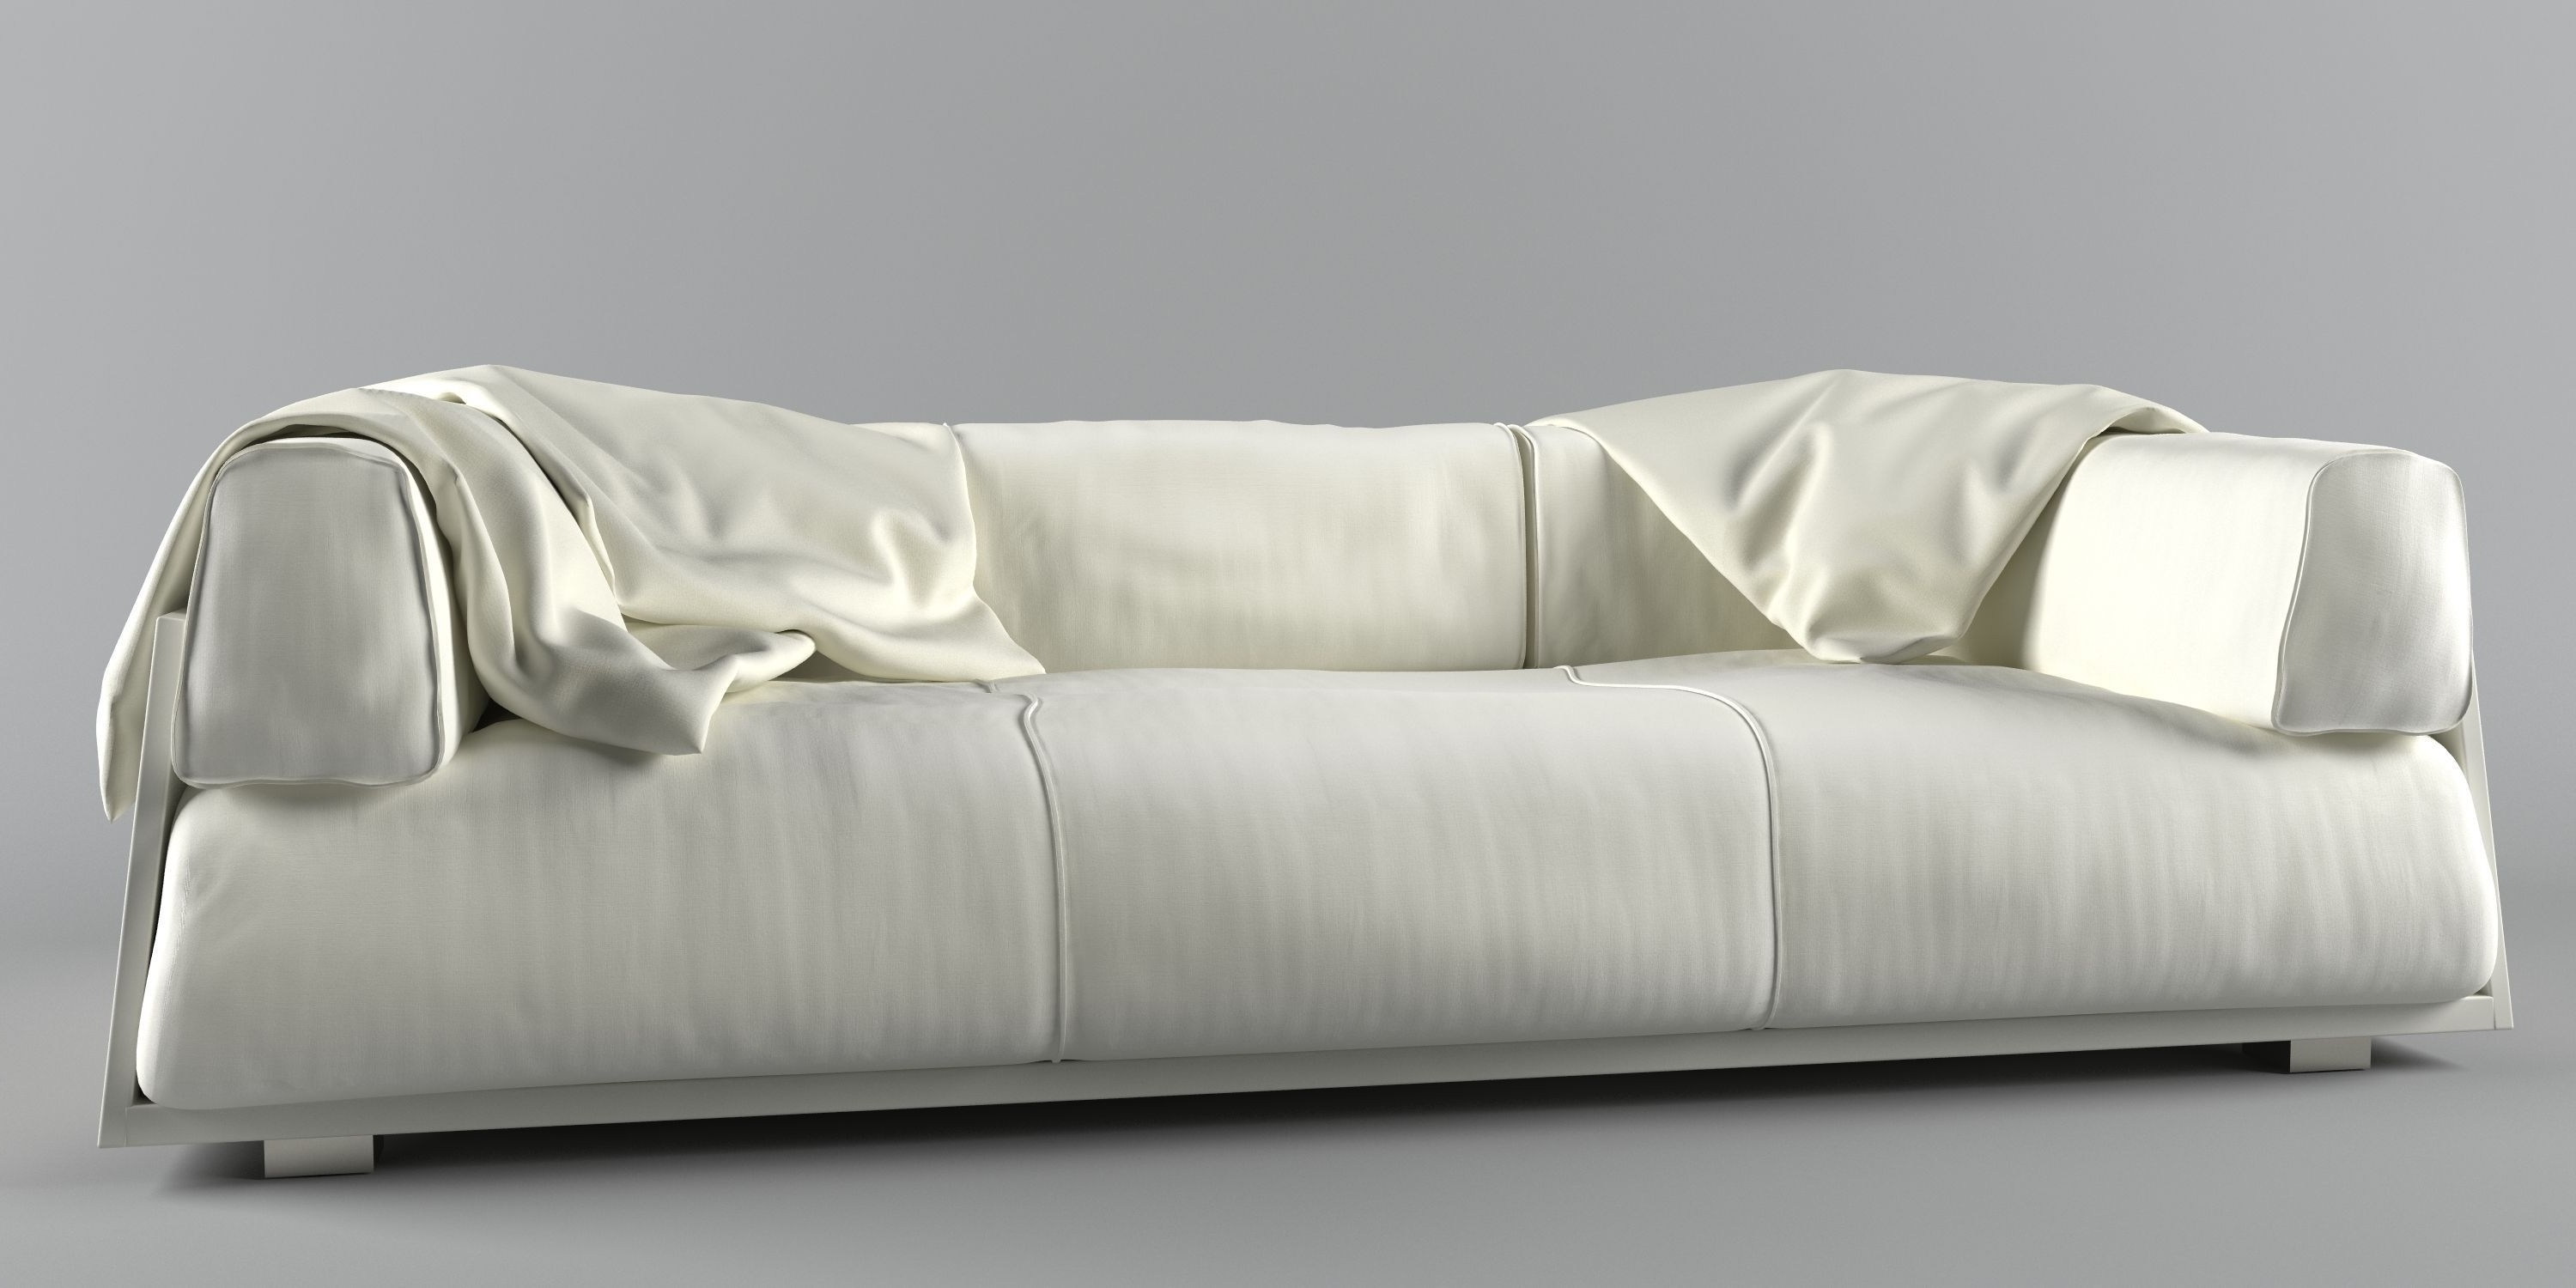 Well Liked Soft Sofas Pertaining To Beautiful Soft Sofa 24 For Sofas And Couches Ideas With Soft Sofa (View 19 of 20)